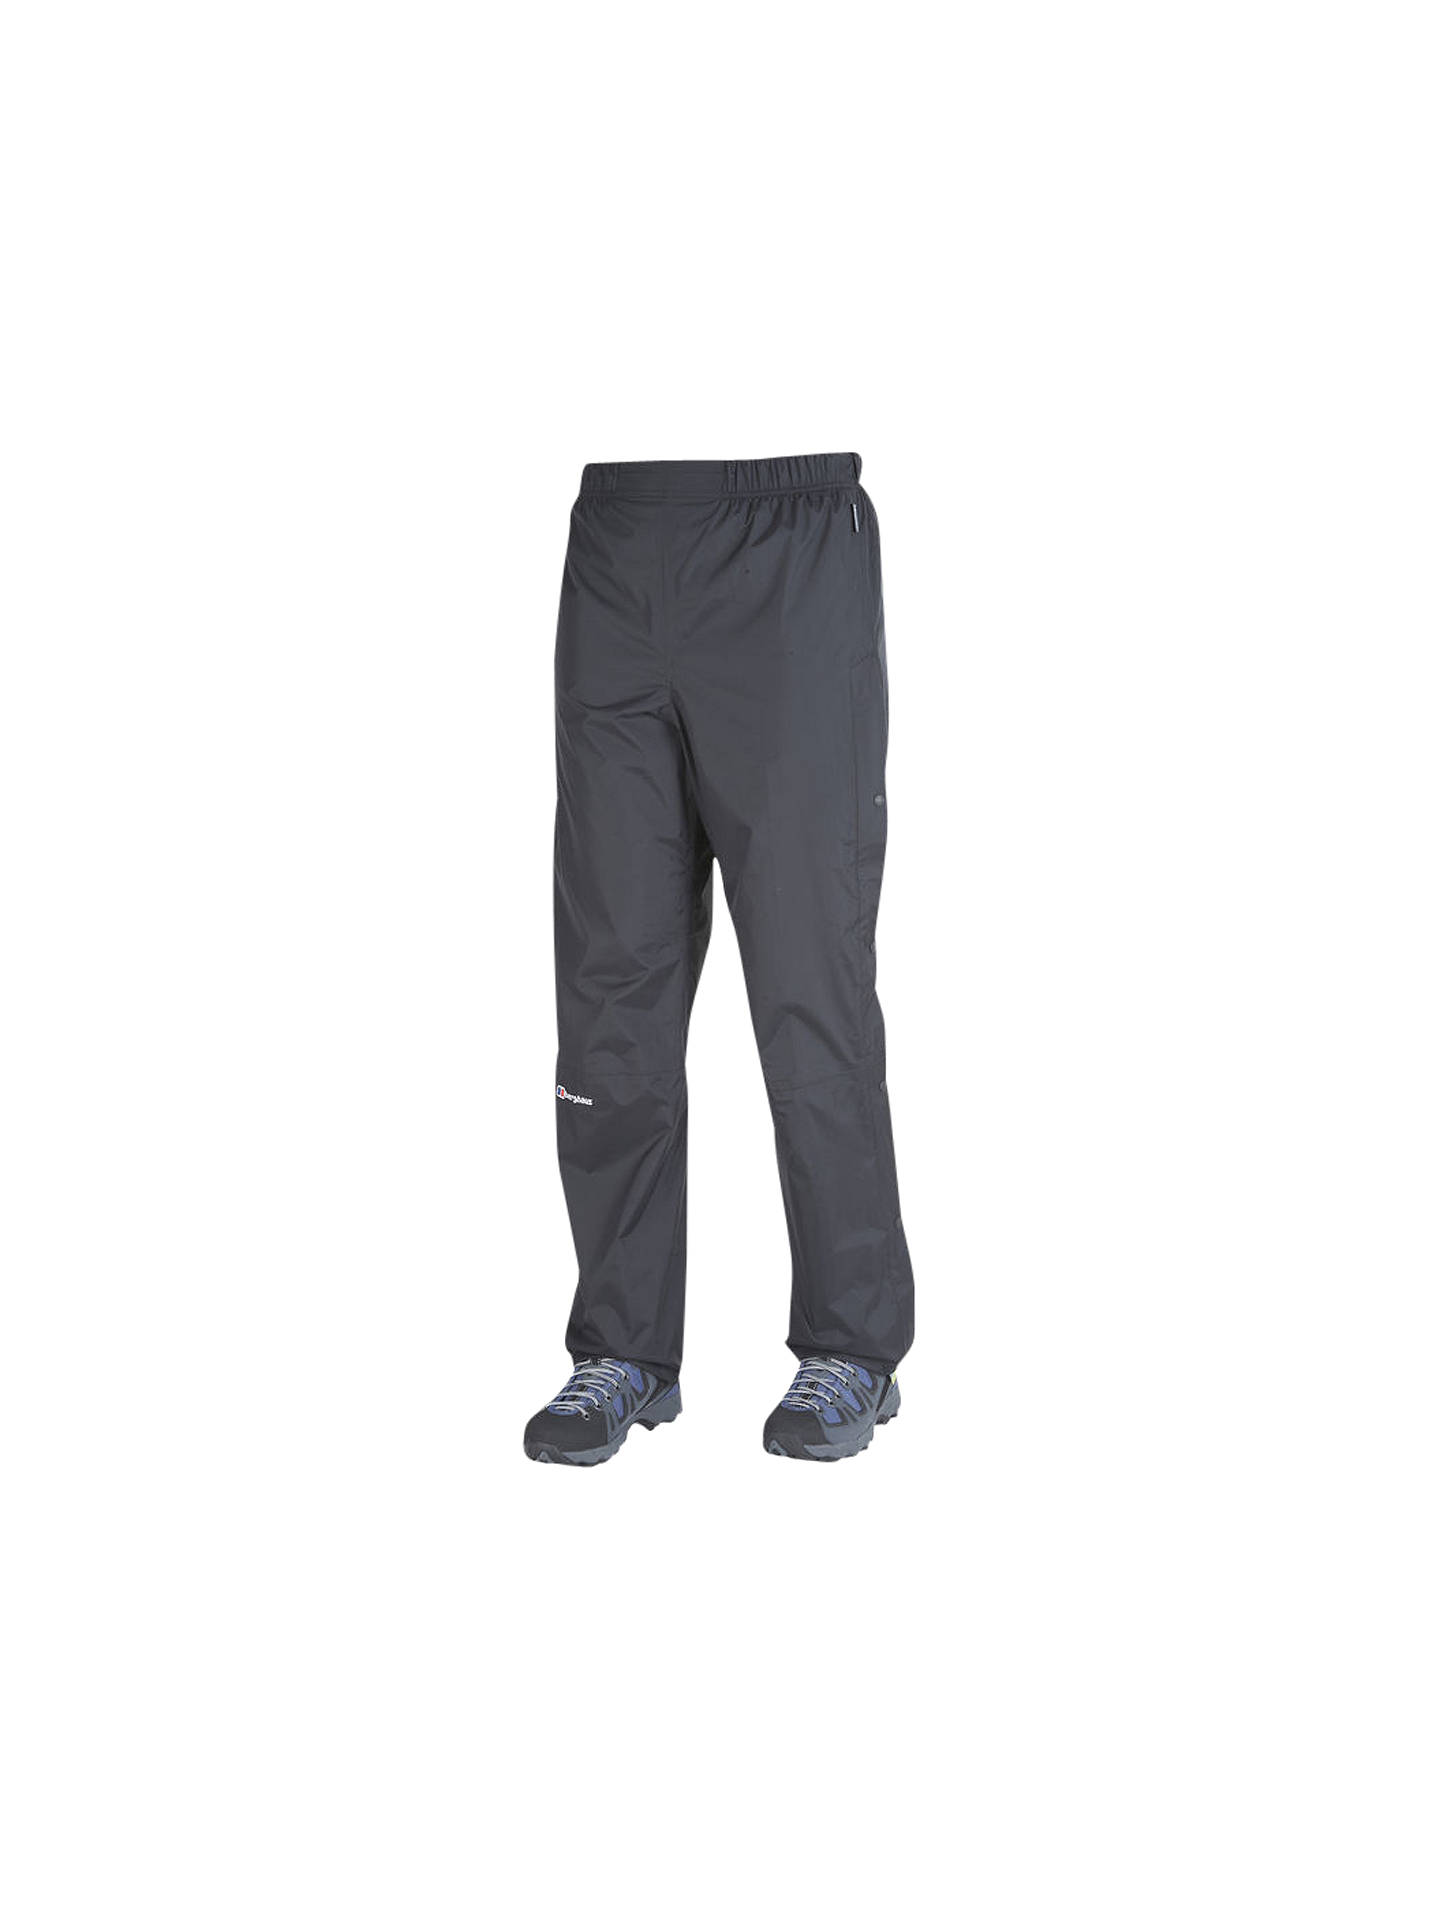 BuyBerghaus Deluge Waterproof Over-Trousers, Black, 8 Online at johnlewis.com